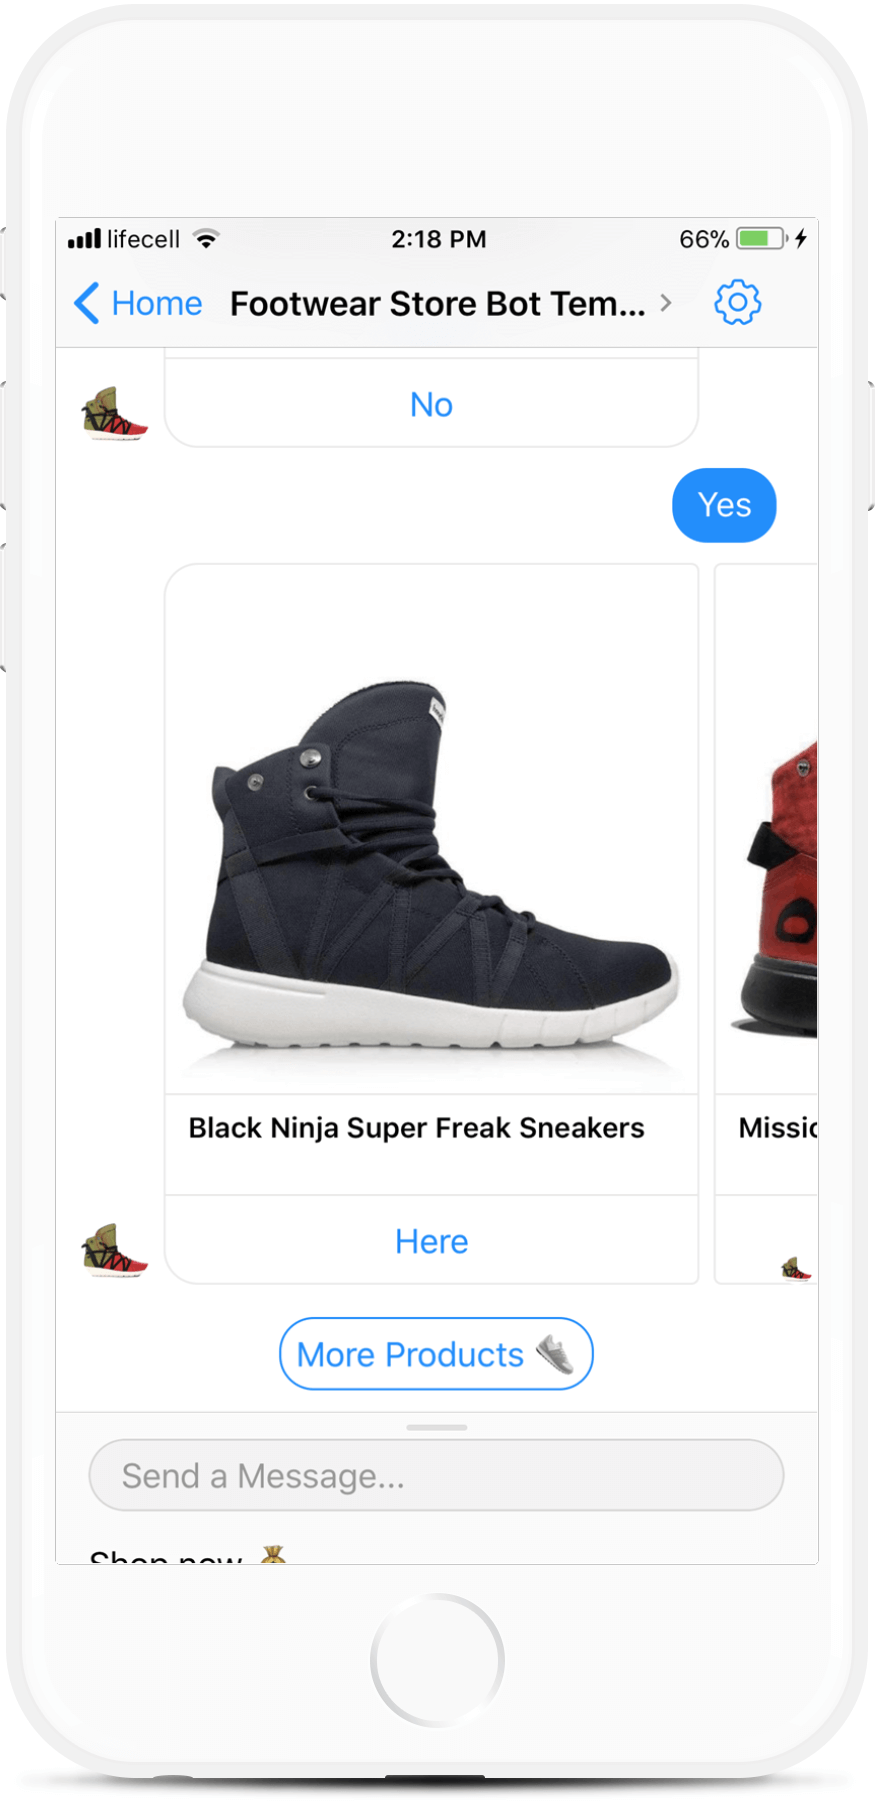 E-Commerce Messenger Bot Template for Footwear Stores for $69